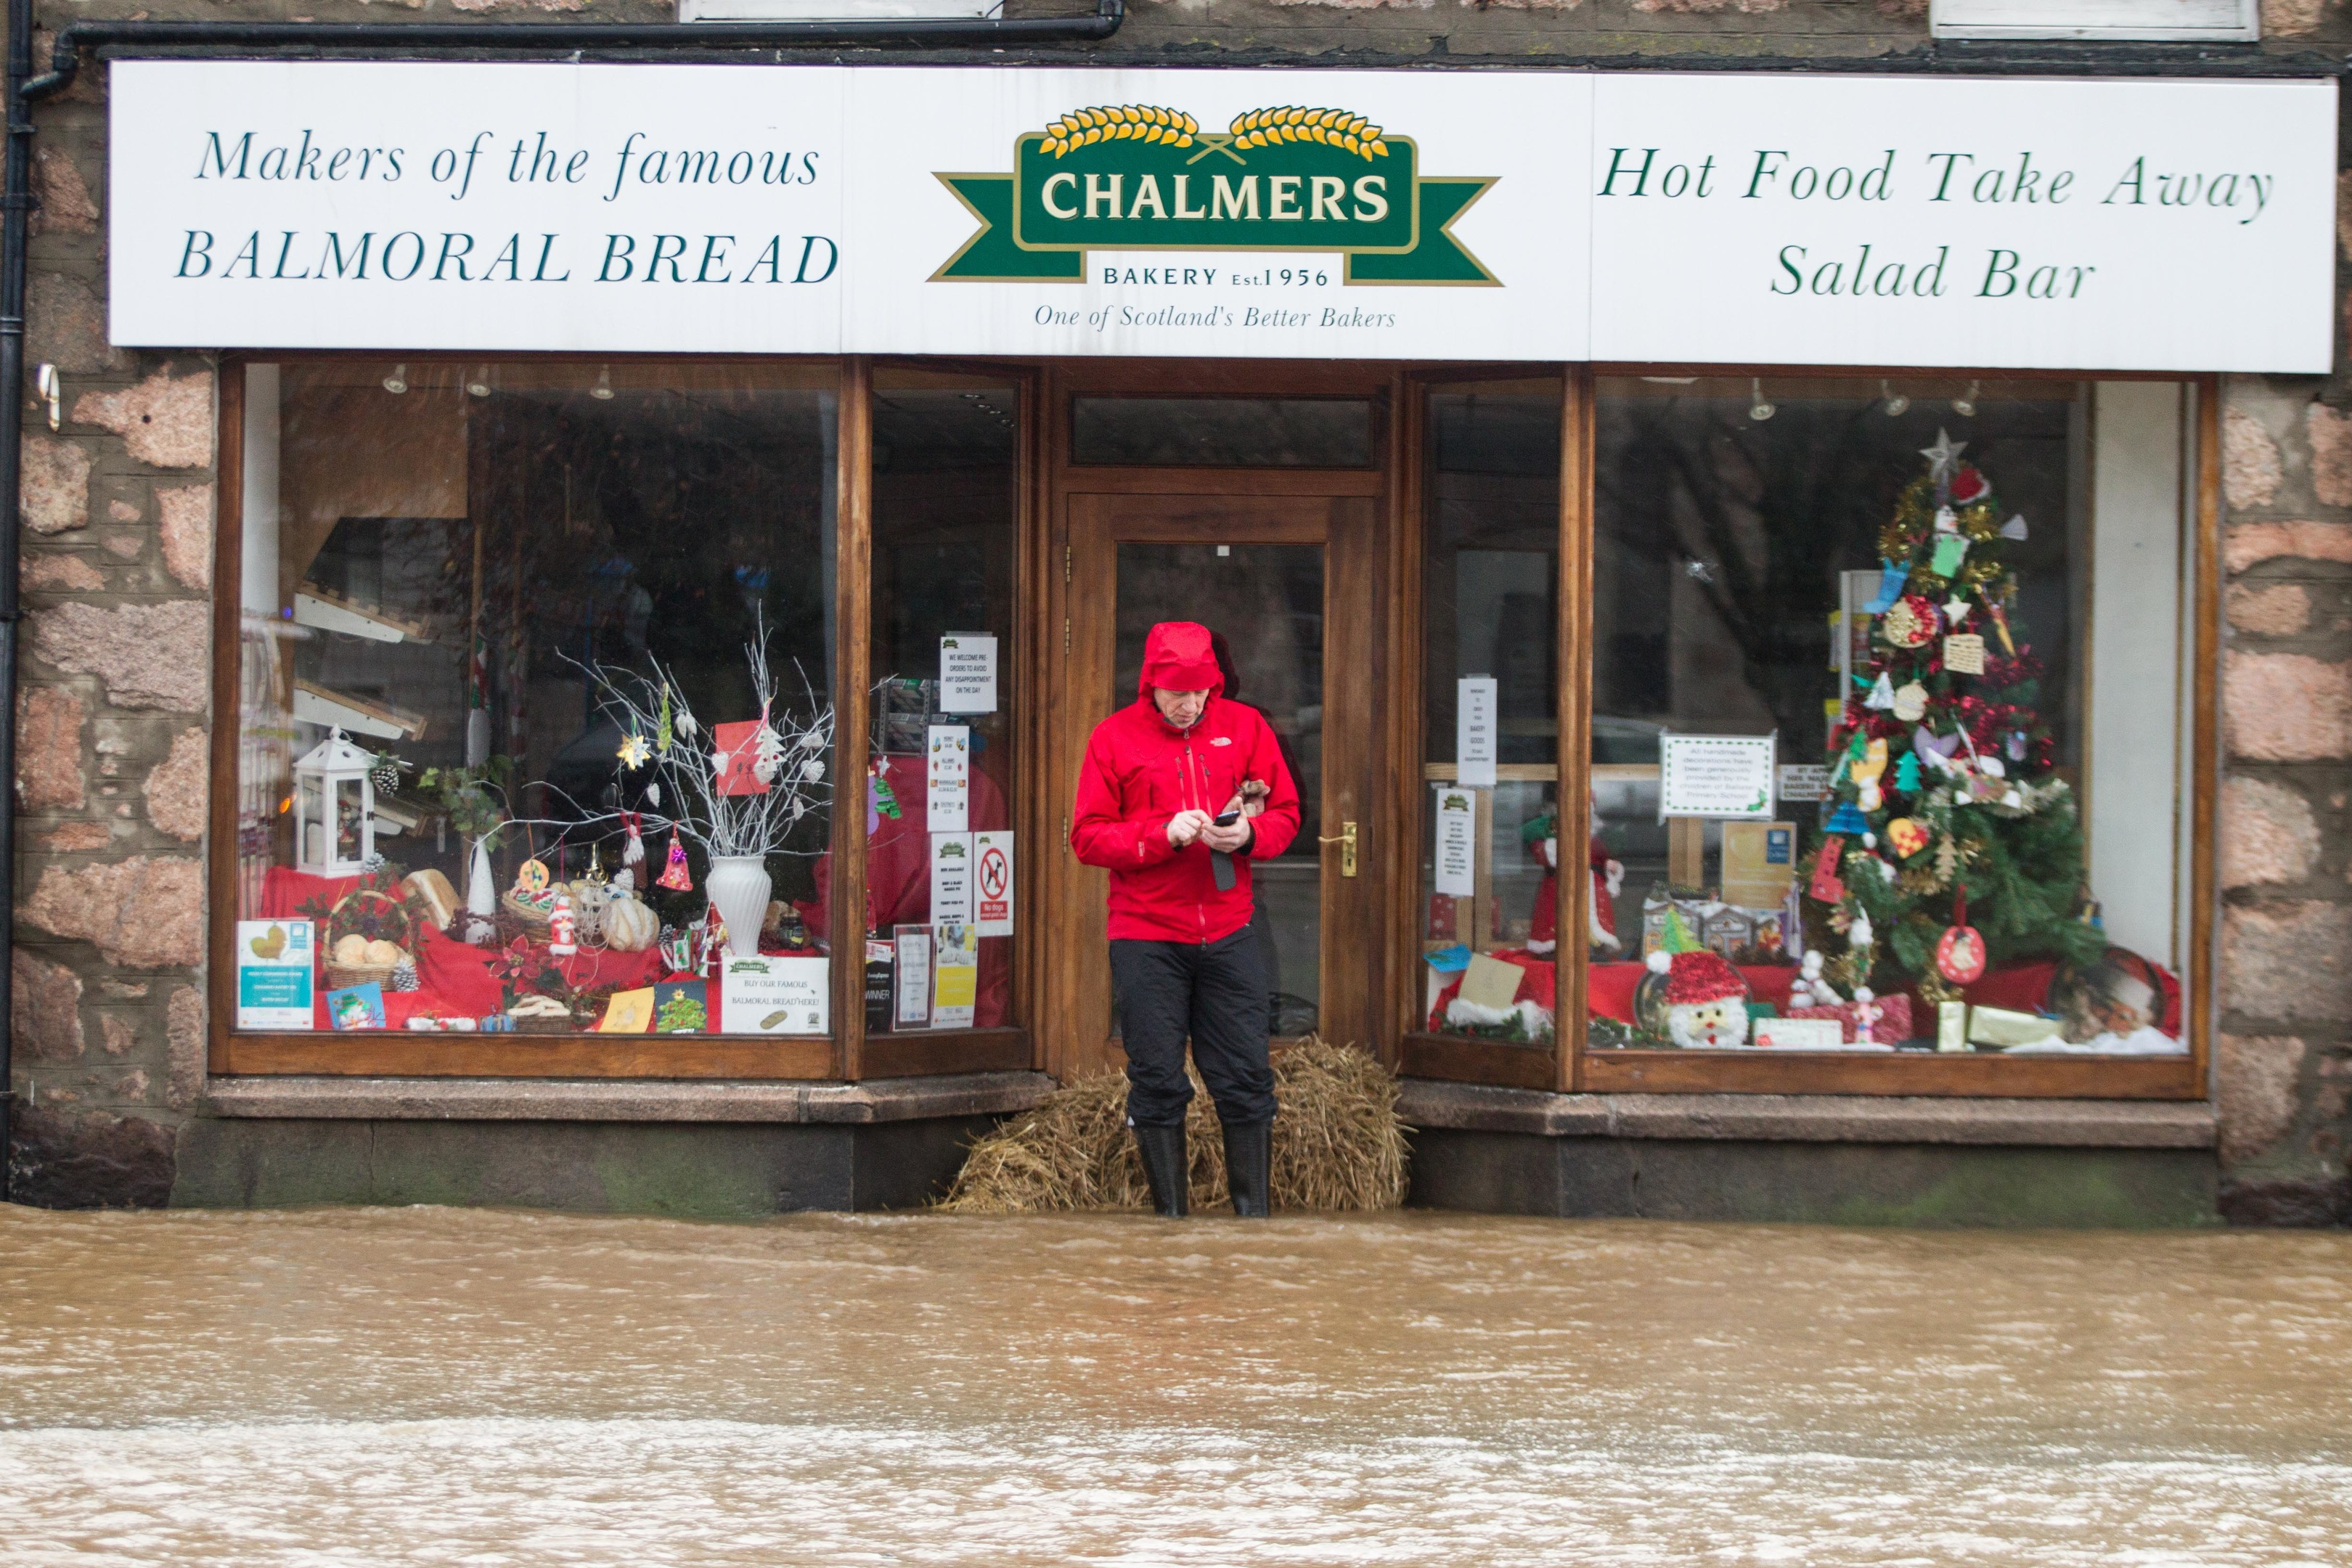 Grants of up to £1,500 are available to help flood hit properties.